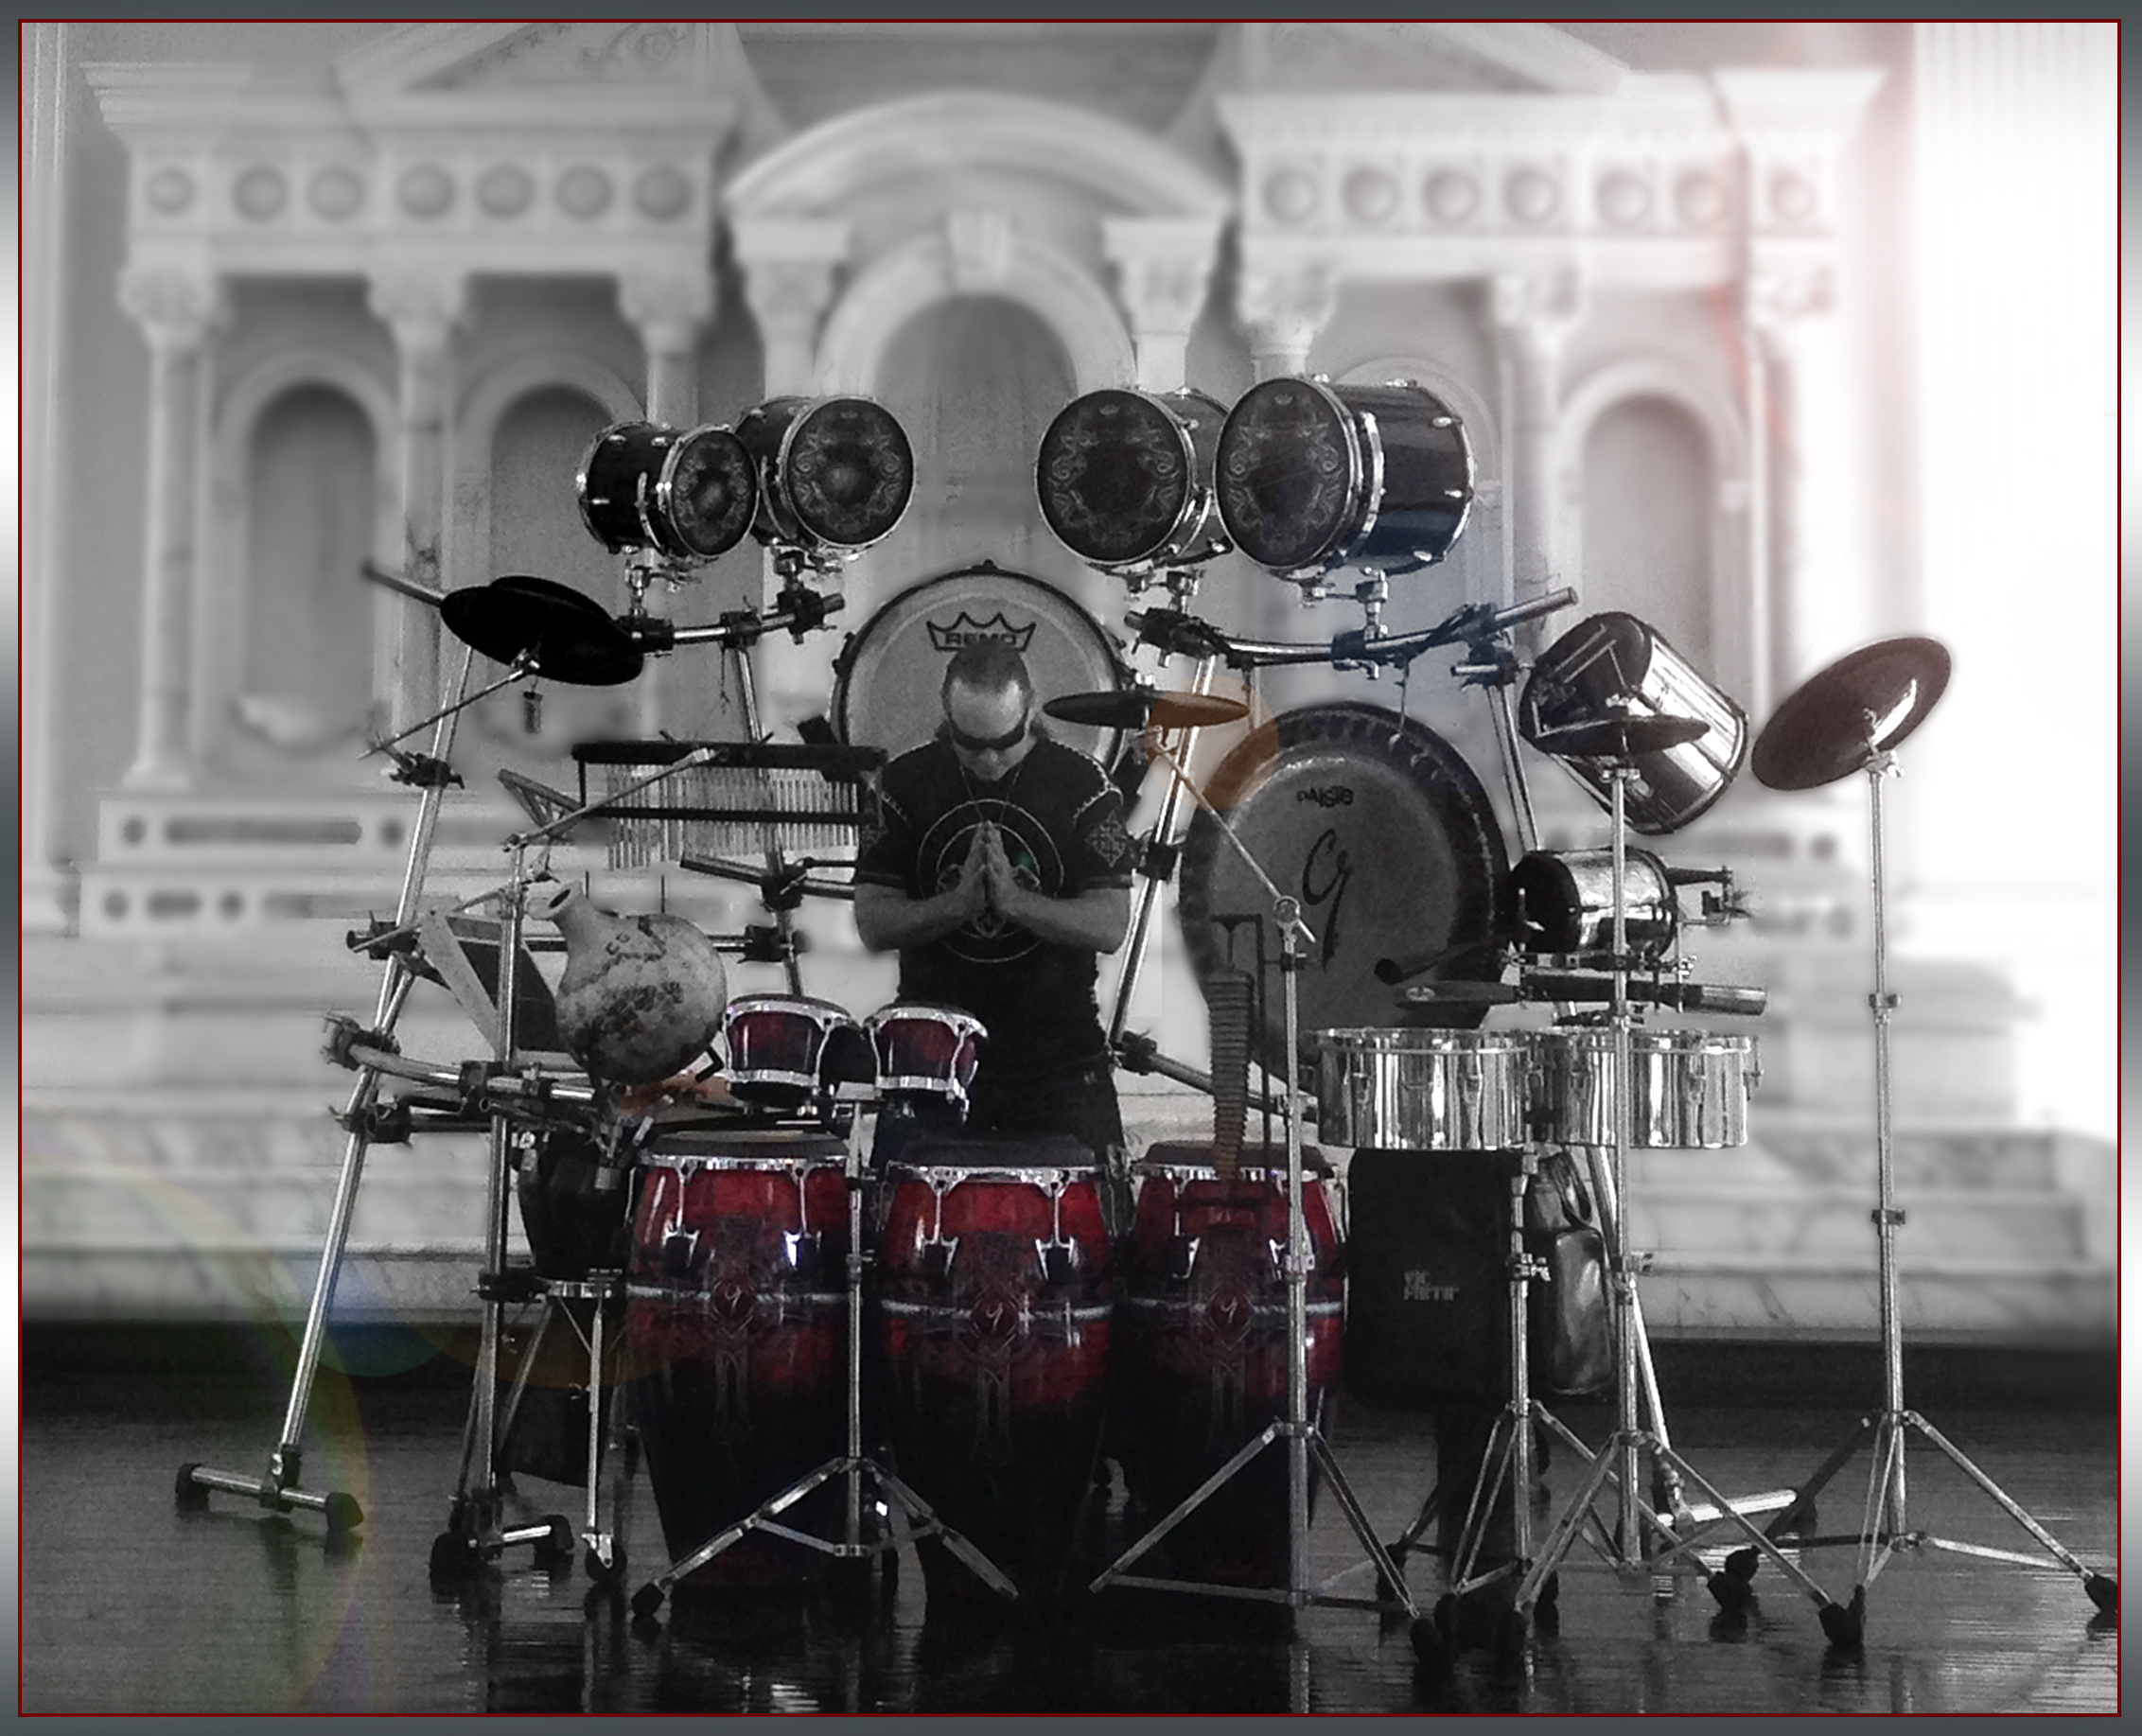 SOLO PERFORMANCE - This is C.G. Ryche performing to his music solo. Know internationally as one of the most ground-breaking and exciting percussionist today, Ryche has performed solo for the NFL, Open for Roger Daultrey &Queensryche and performs for years for Disneyland Resorts & Universal Studios.